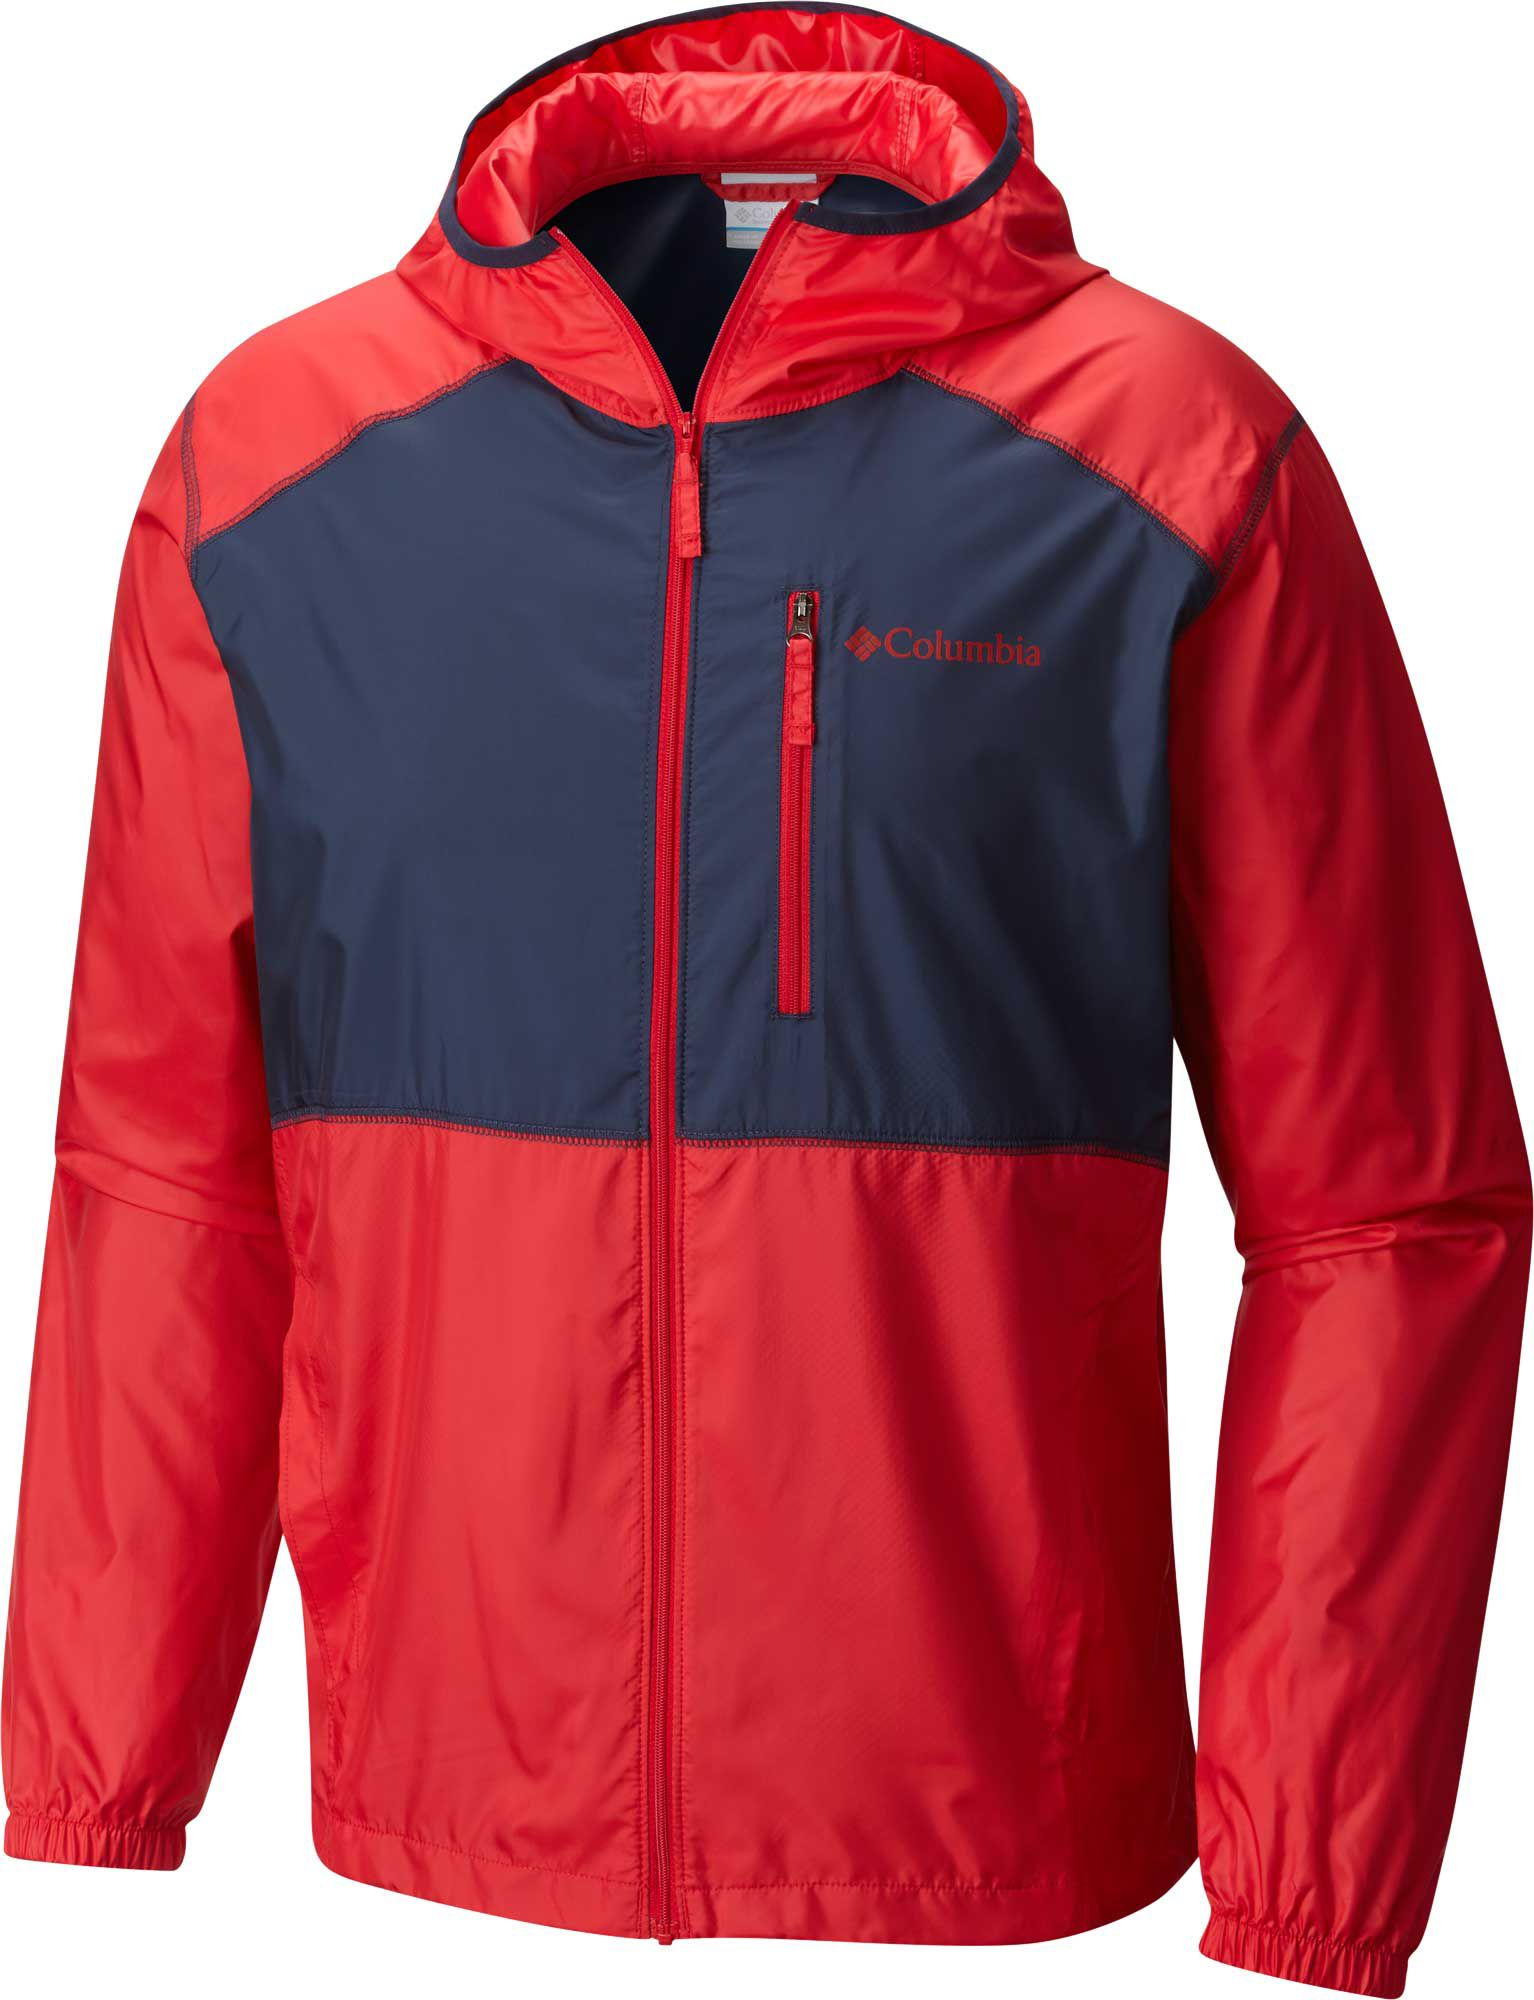 Men's Windbreakers | DICK'S Sporting Goods